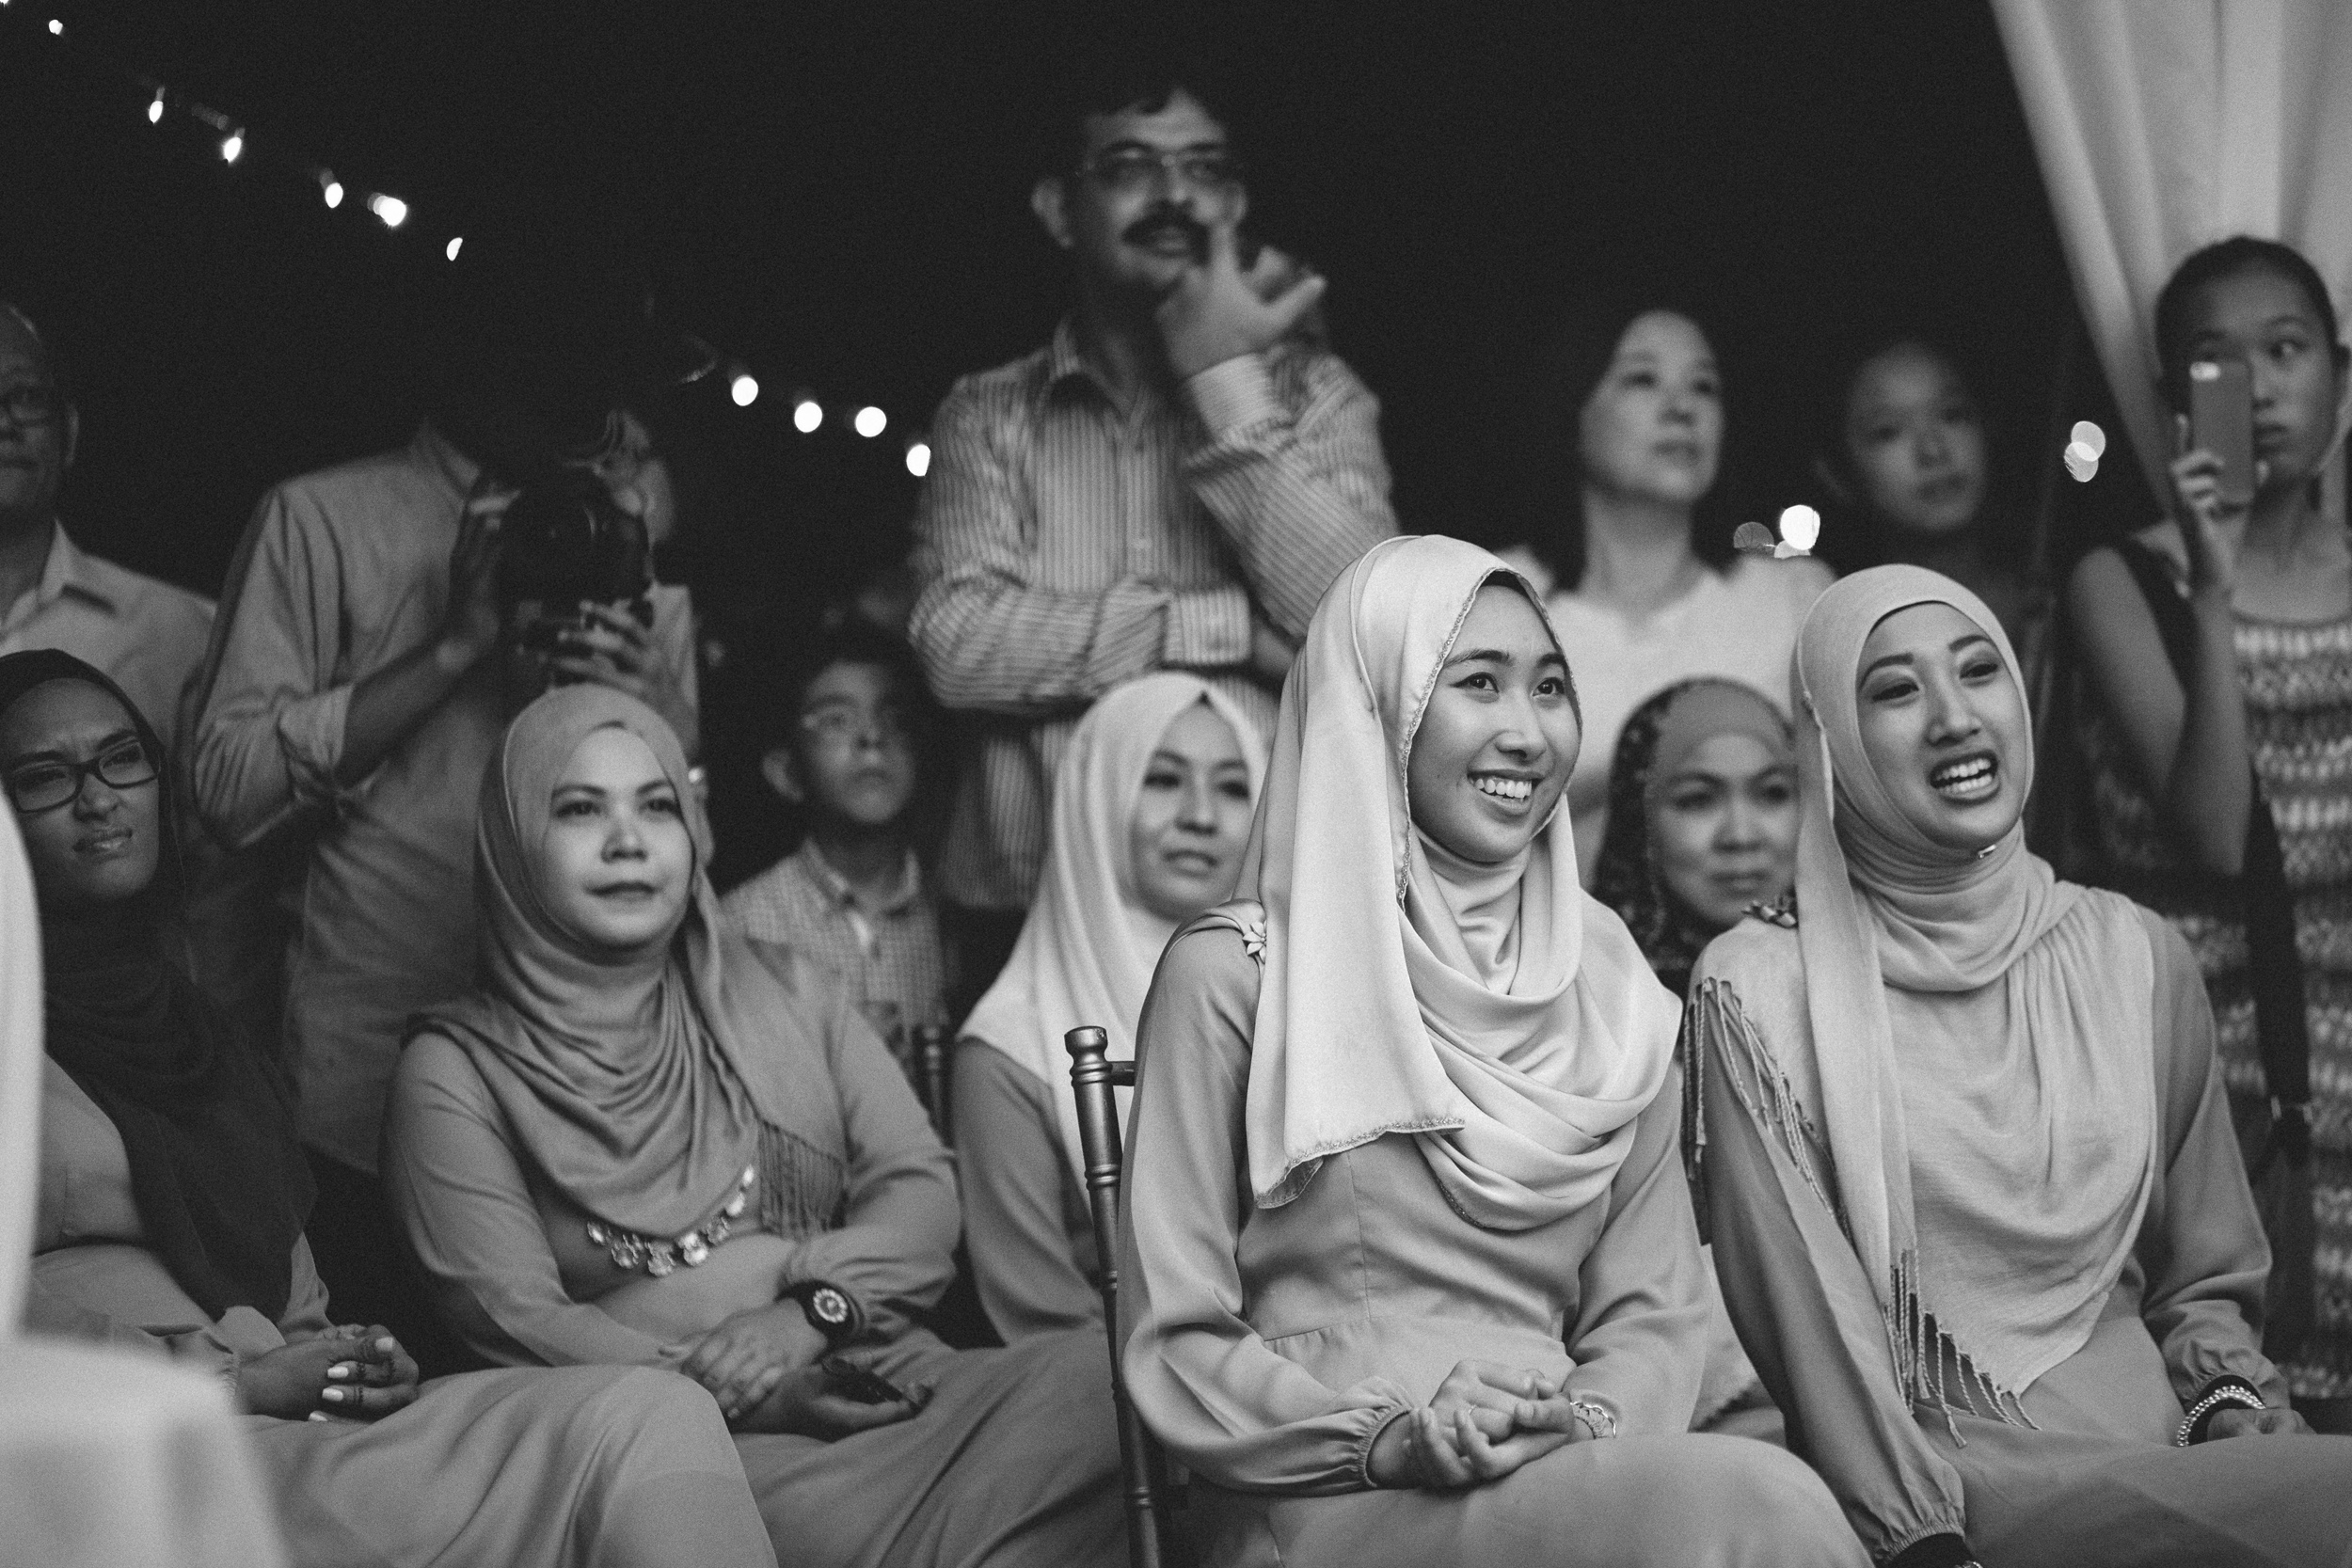 singapore-wedding-photographer-wemadethese-aisyah-helmi-75.jpg